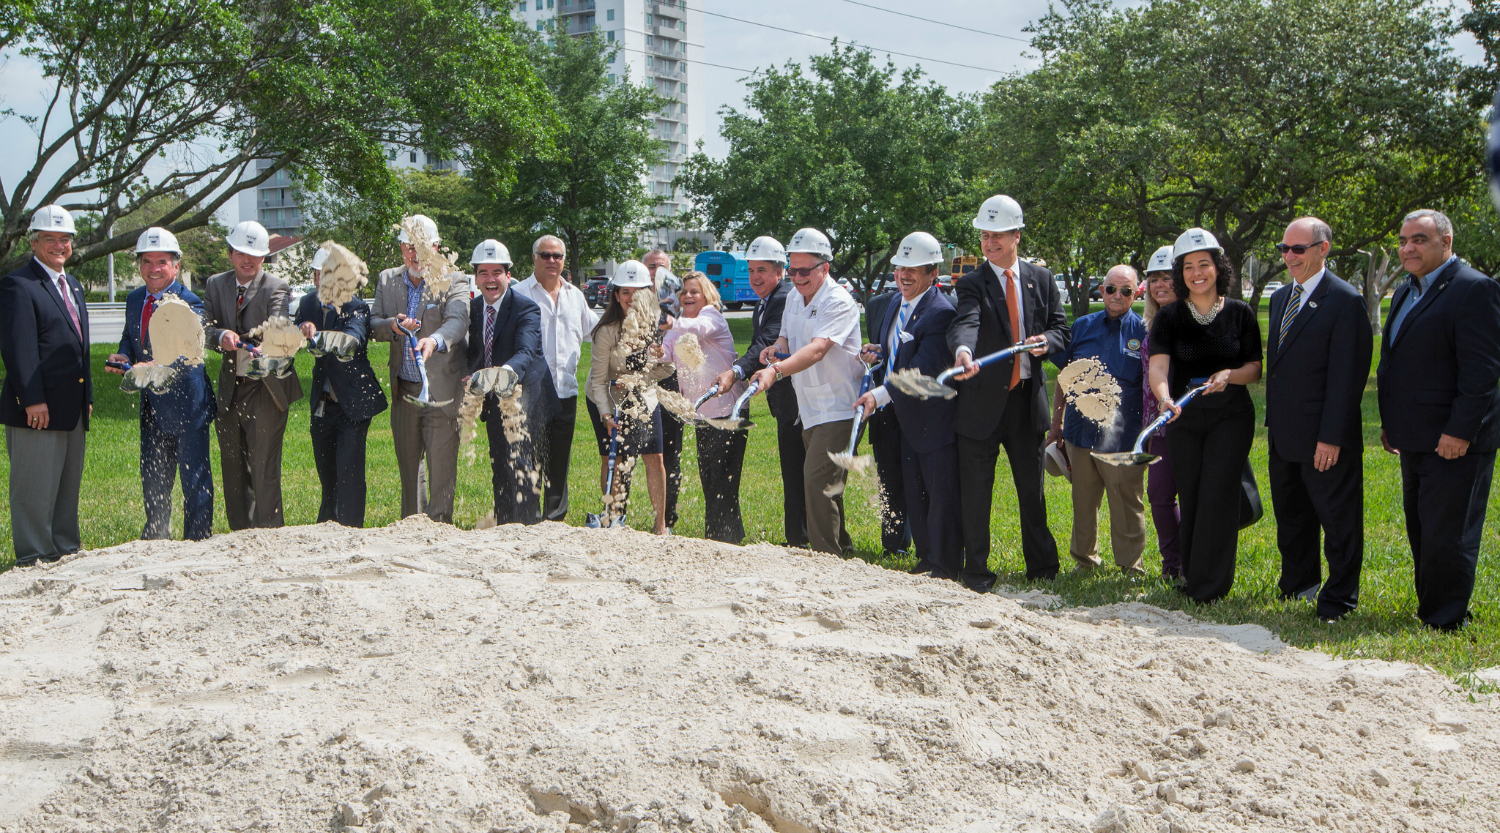 Local and national leaders, including Congresswoman Ileana Ros-Lehtinen and Sweetwater Mayor Orlando Lopez, gathered at FIU to break ground for the new bridge